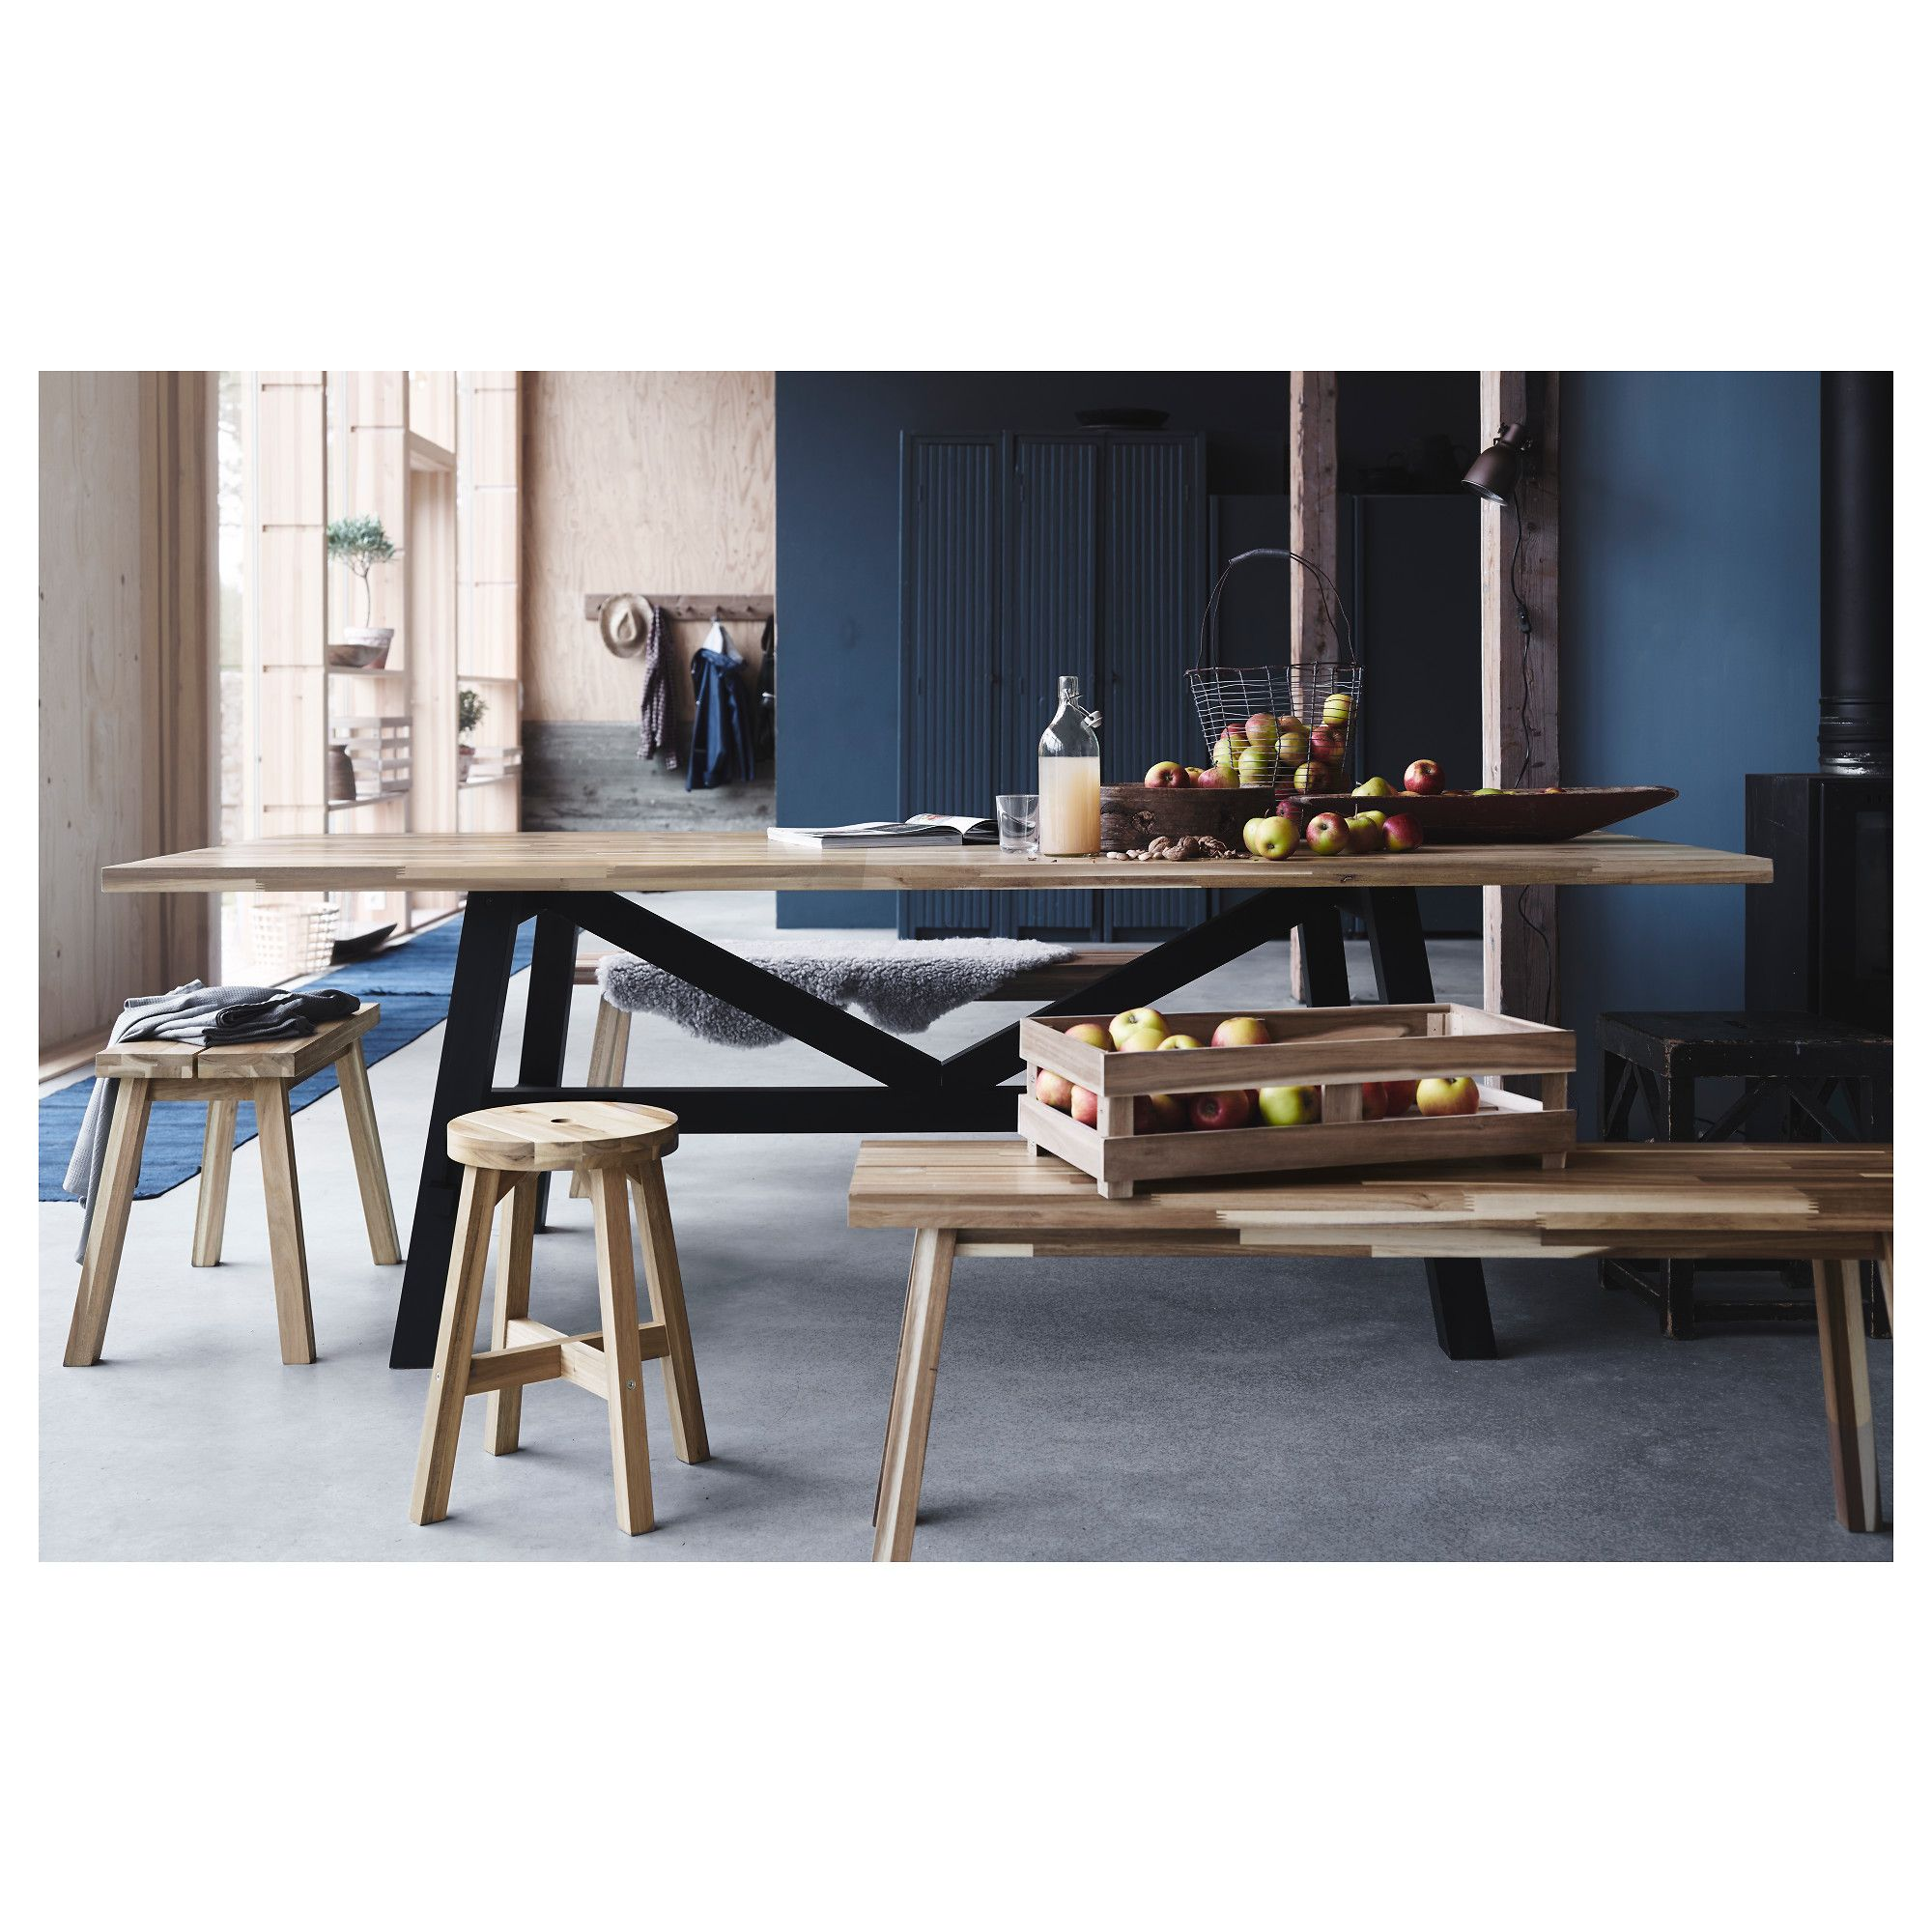 20 Best Minimalist Dining Room Design Ideas For Dinner: Ireland: Shop For Furniture & Home Accessories